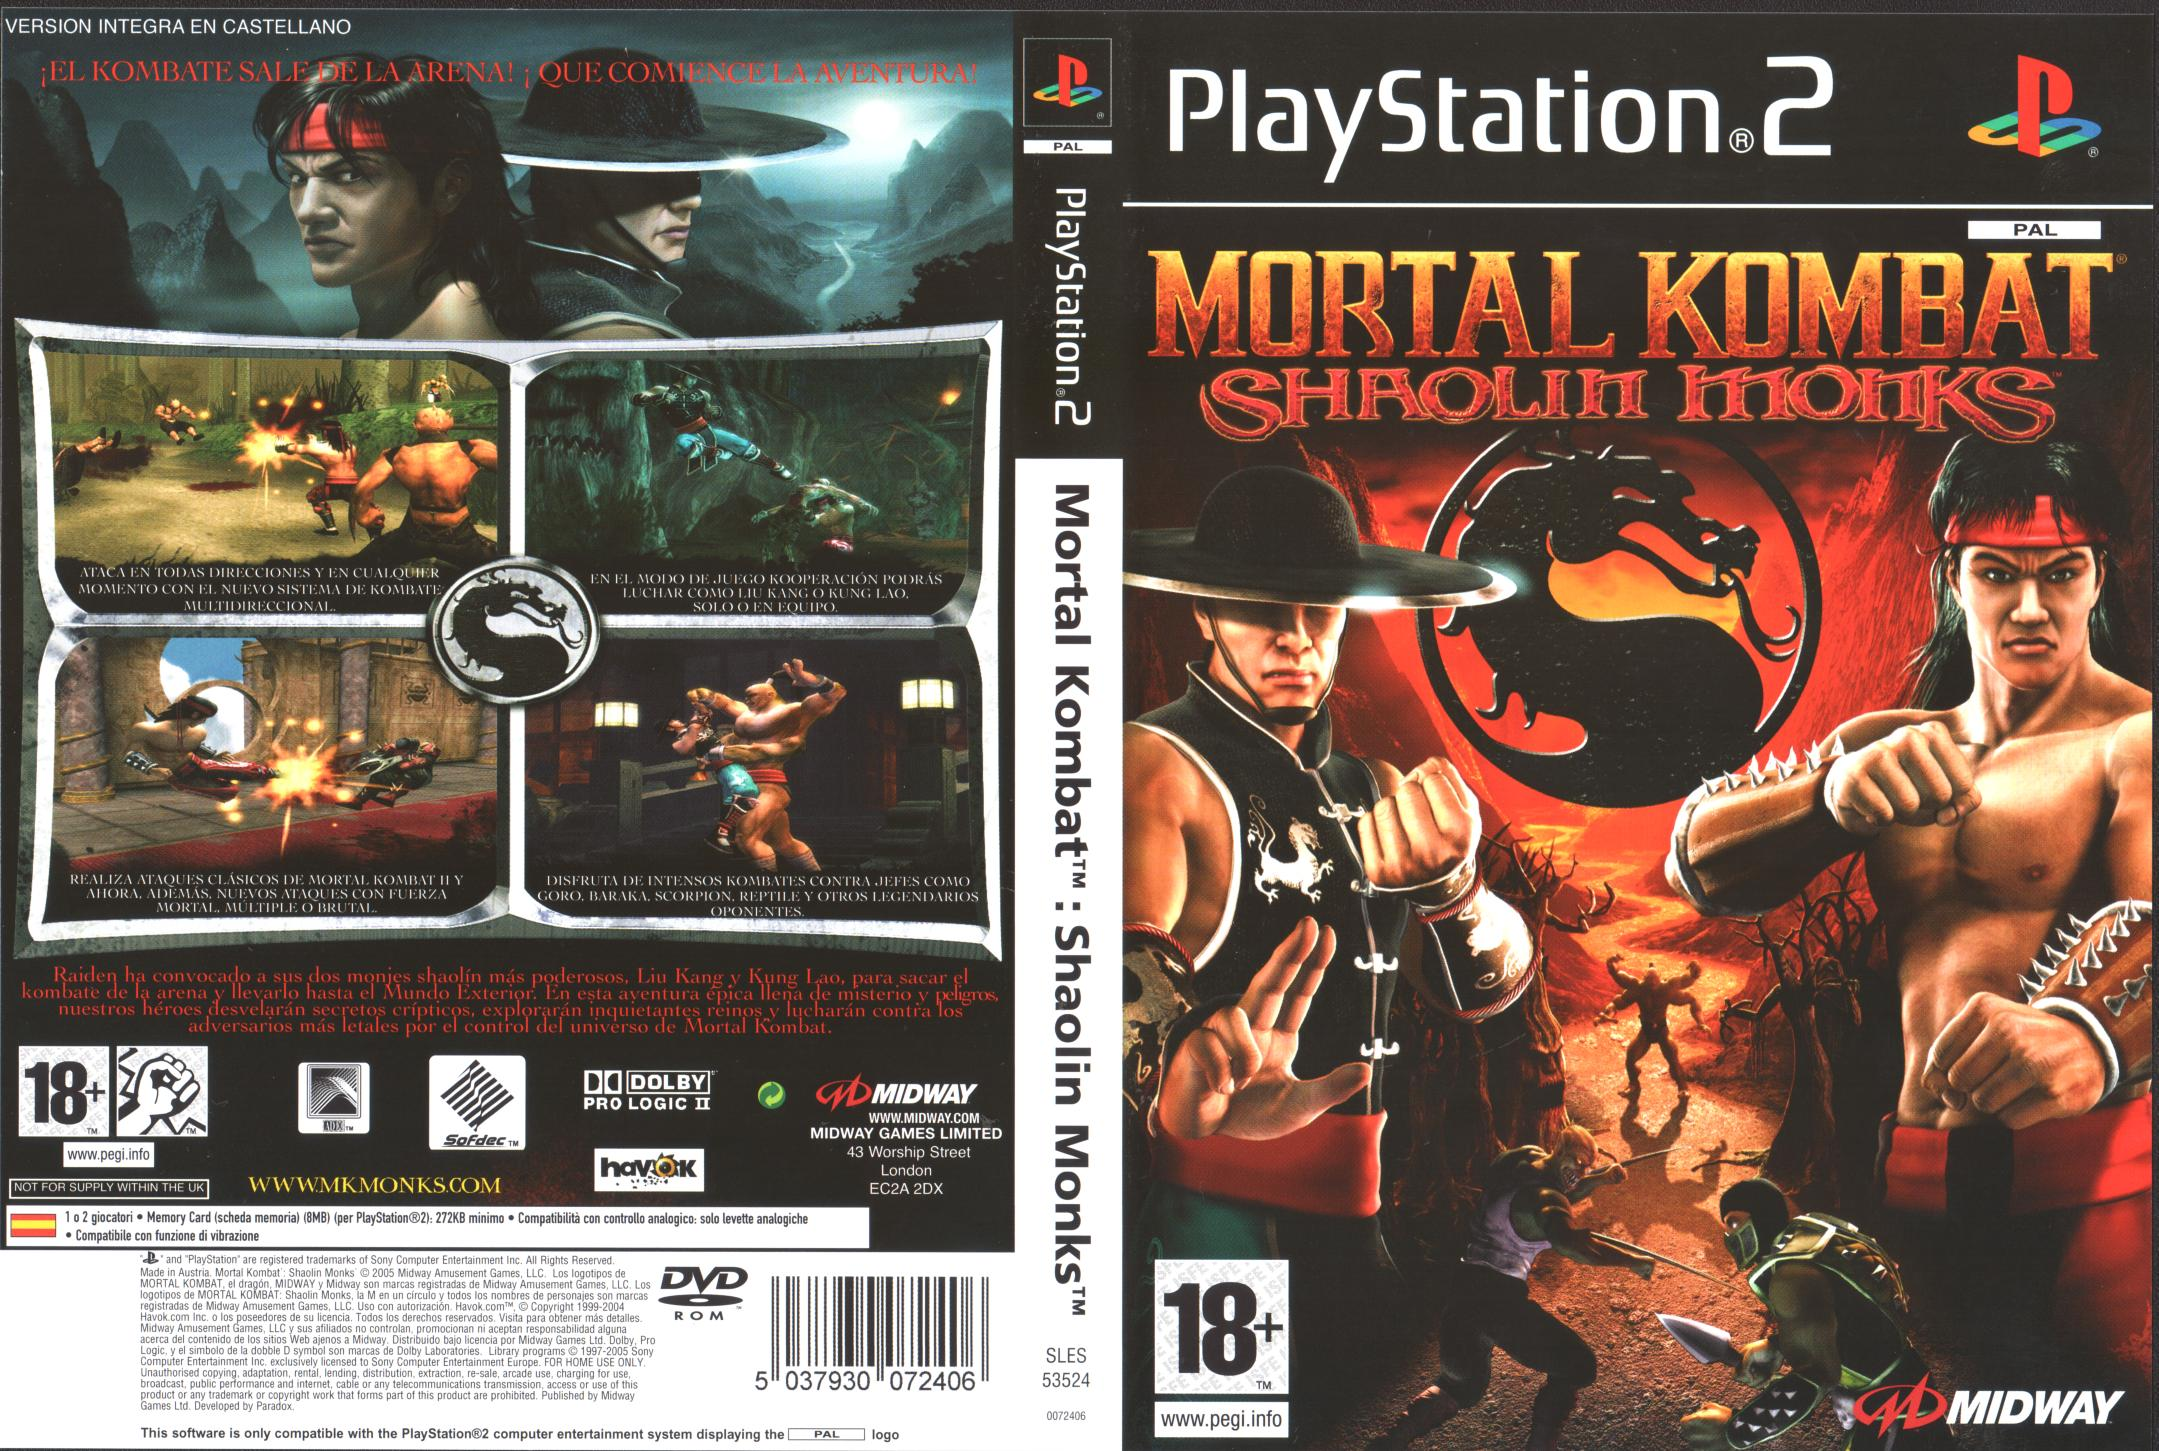 descargar mortal kombat shaolin monks para pc gratis